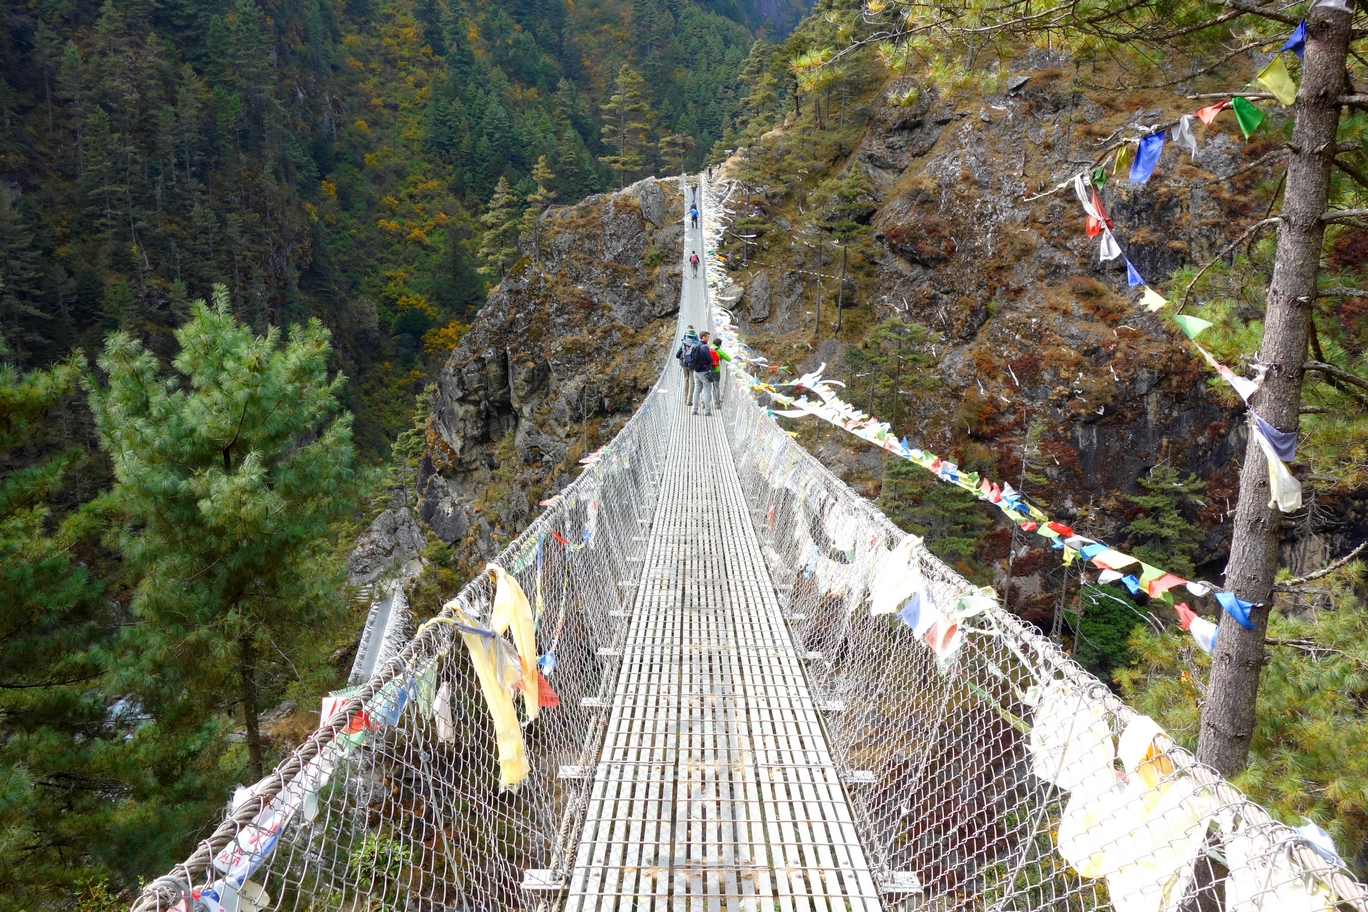 One of the many river crossings on a suspension bridge